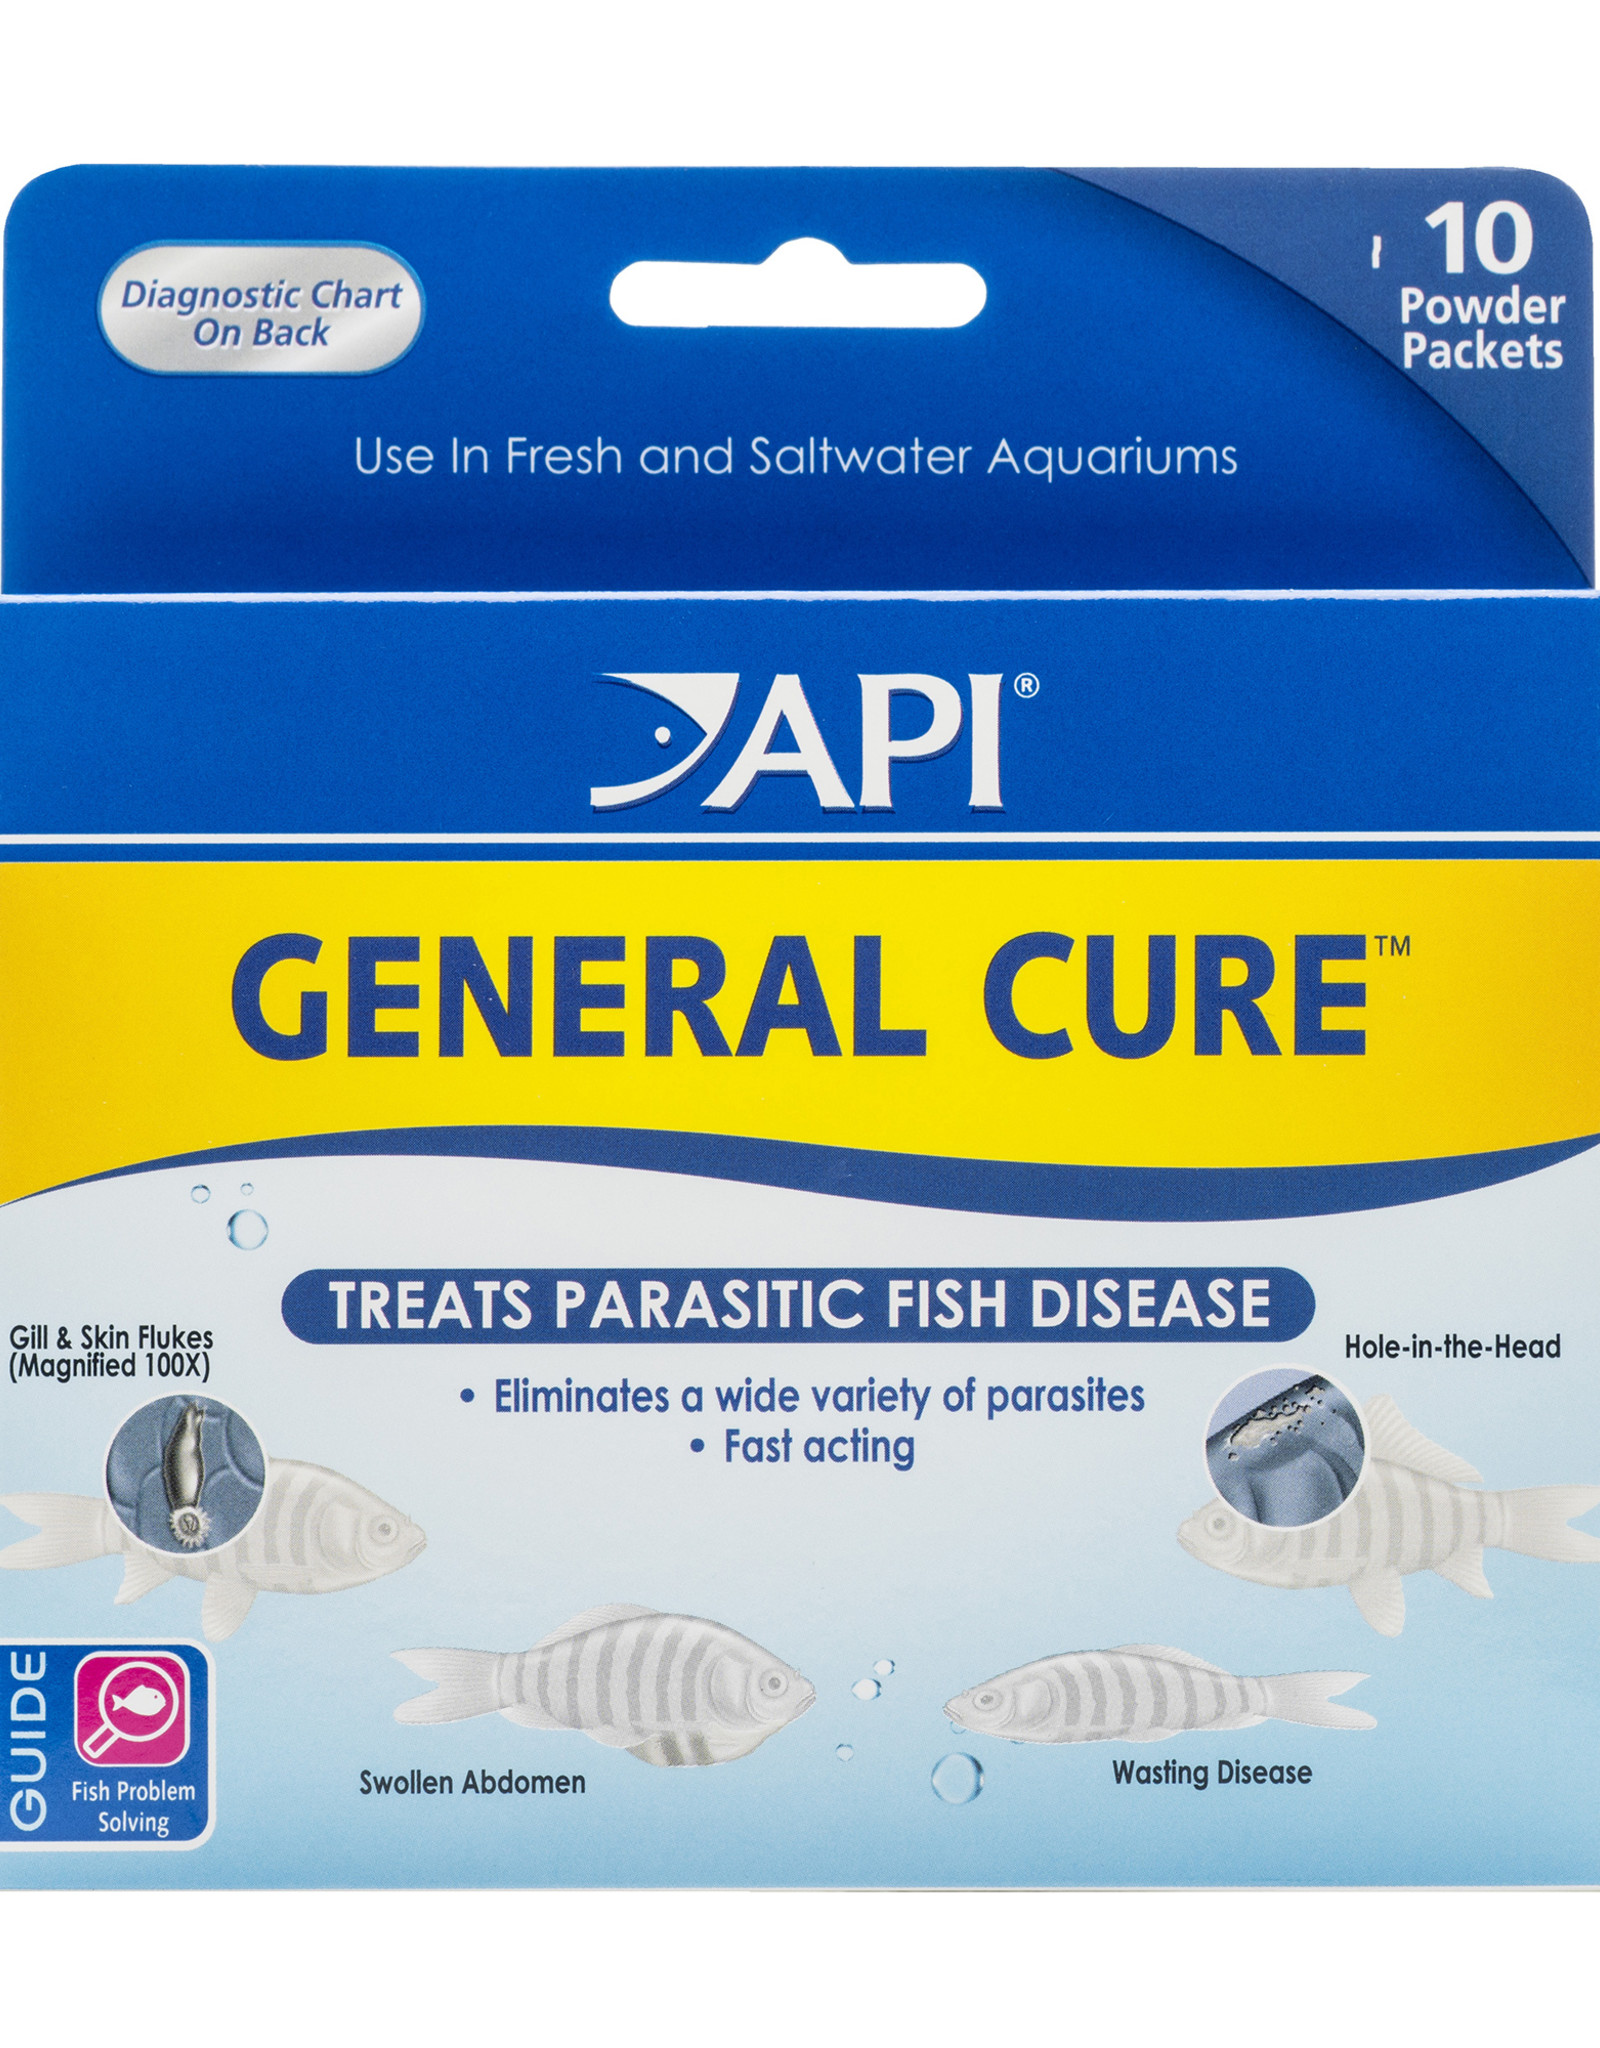 MARS FISHCARE NORTH AMERICA IN API GENERAL CURE POWDER PACKETS